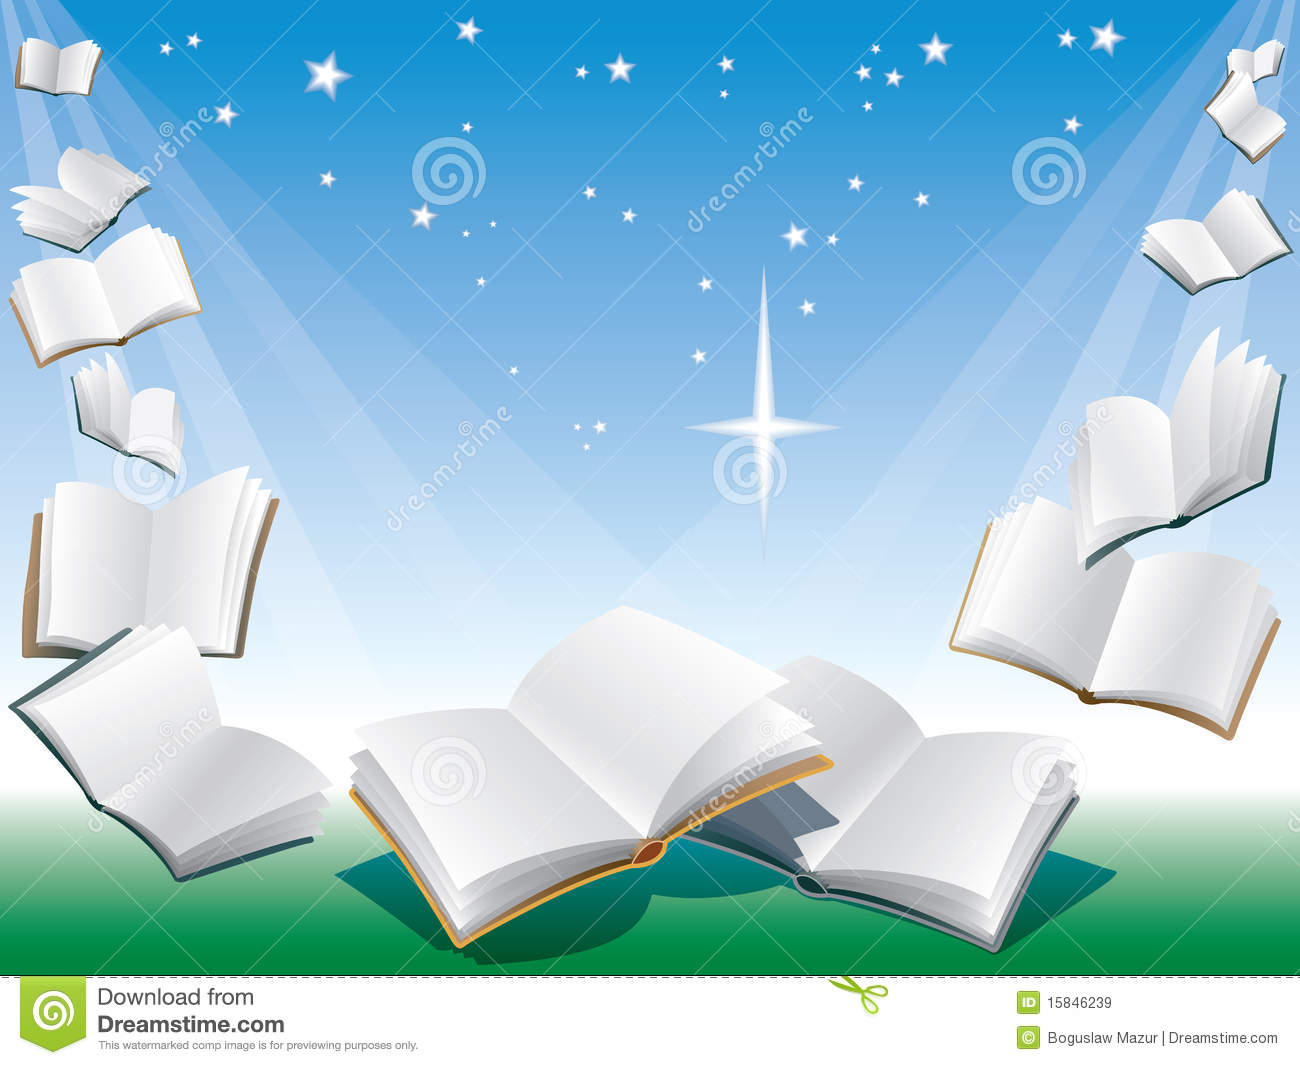 Flying Books Royalty Free Stock Images - Image: 15846239